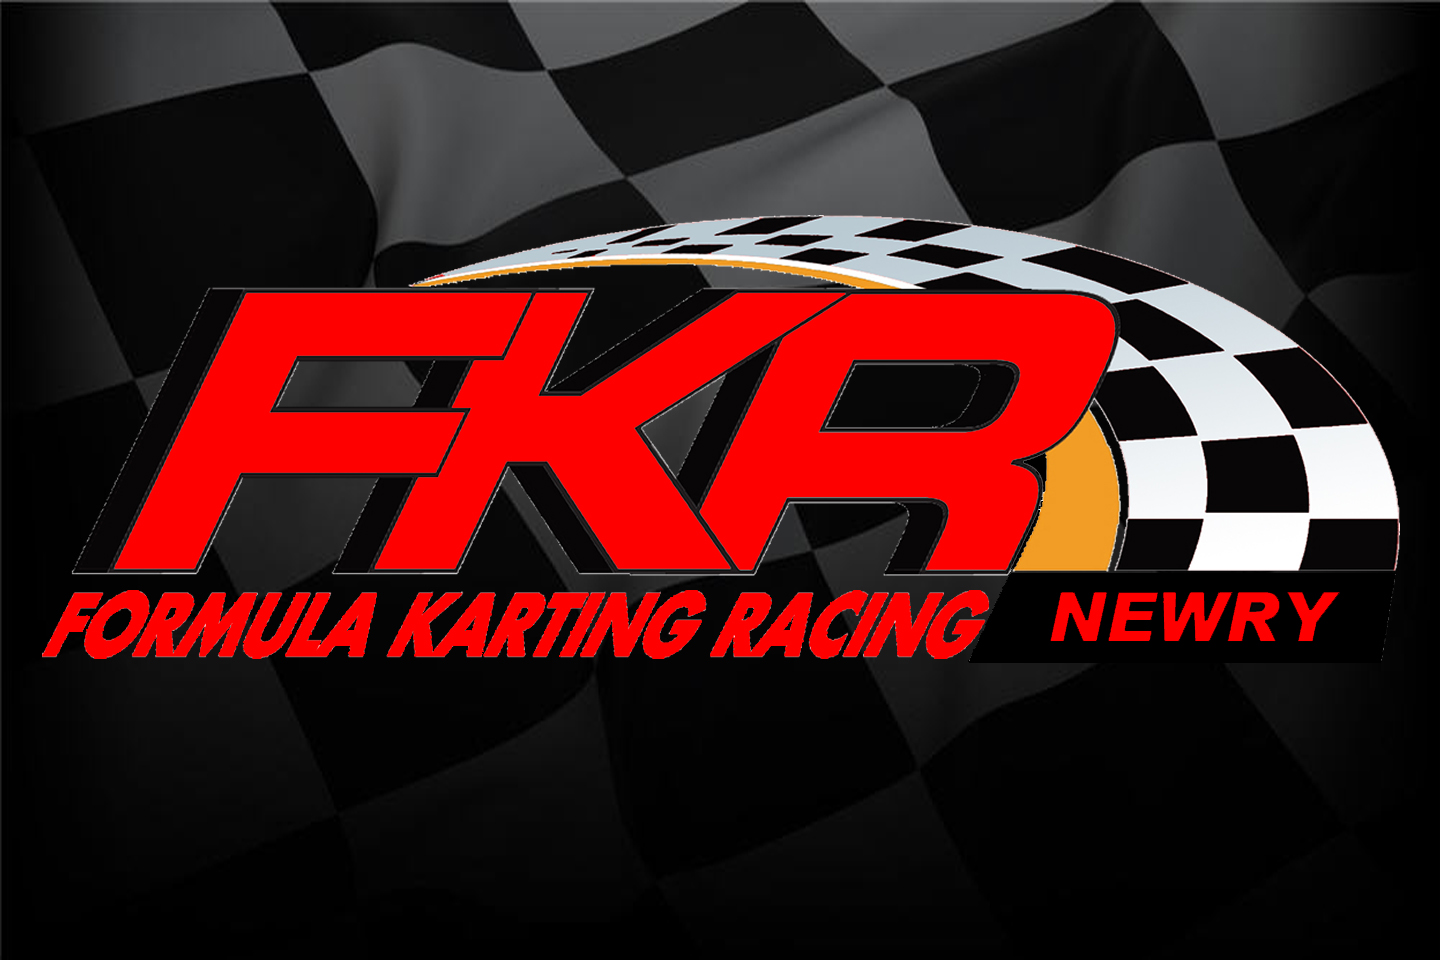 https://formula-karting.com/wp-content/uploads/2017/08/Formula-Karting-960-x-1440-with-chequred-background-1.jpg